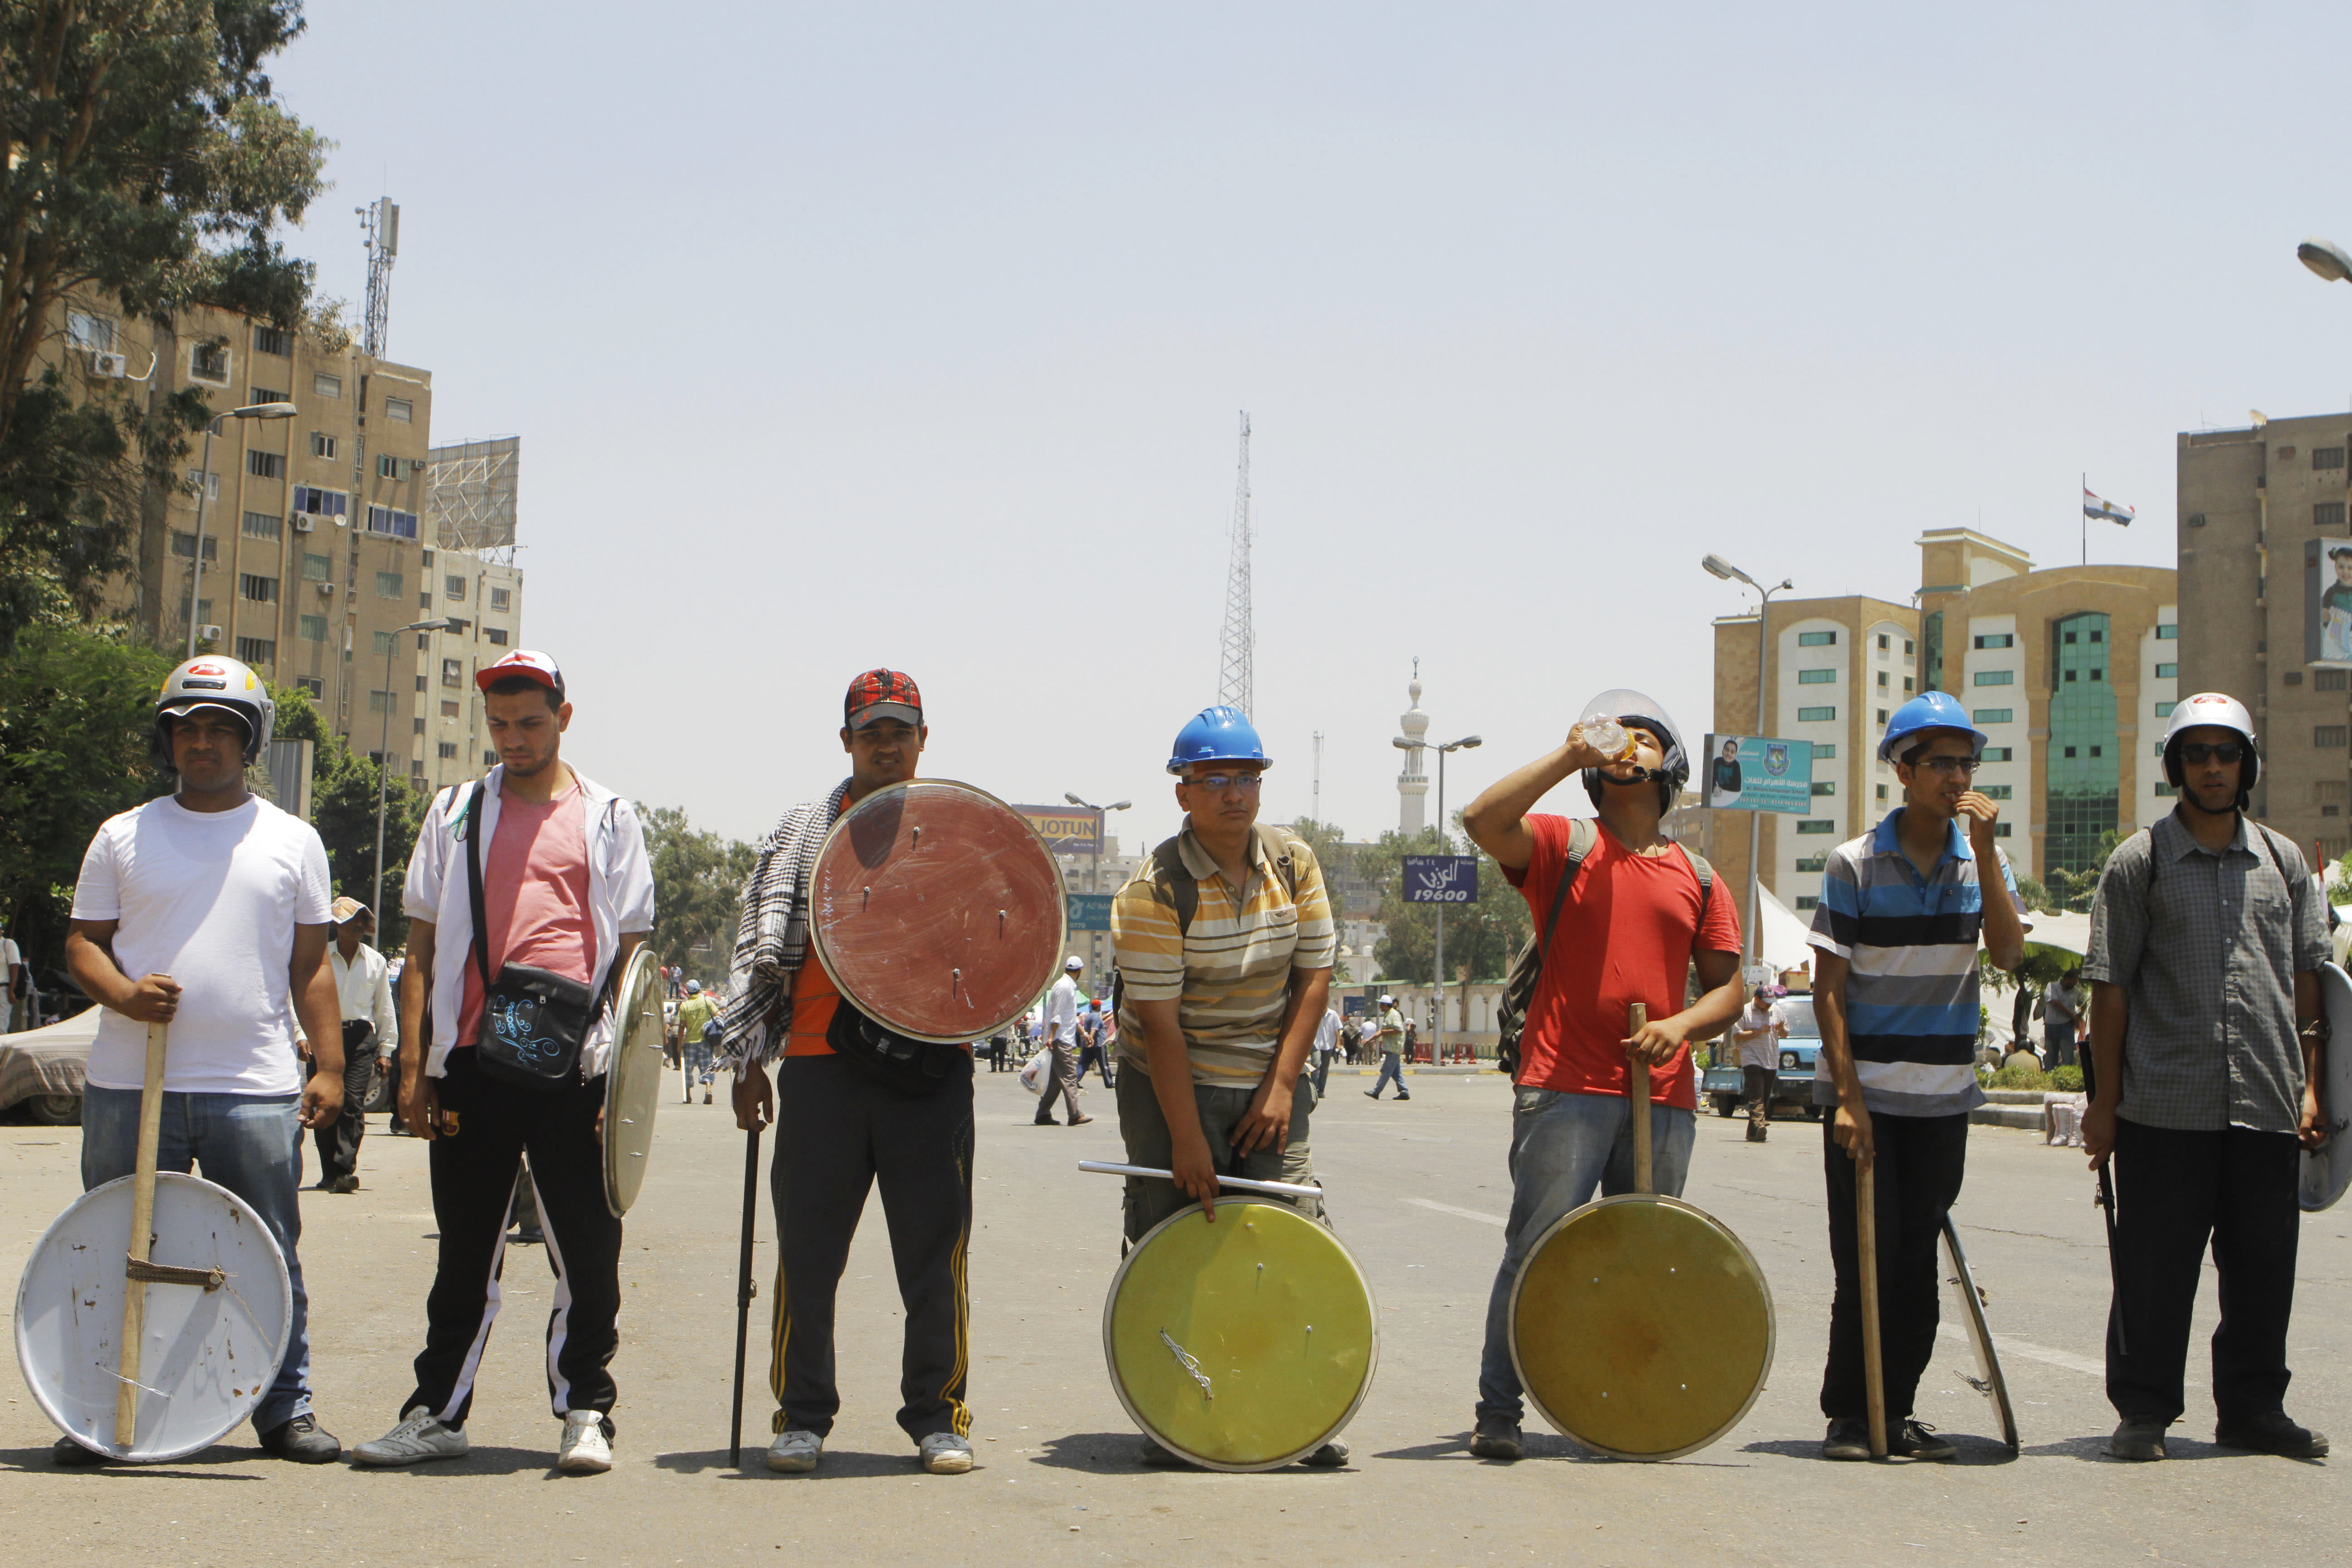 Supporters of Egypt's Islamist President Mohammed Morsi armed by sticks and shields to protect from stone attack guard their protesting site at a public square outside the Rabia el-Adawiya mosque near the presidential palace in Cairo, Saturday, June 29, 2013. Thousands of supporters and opponents of Egypt's embattled Islamist president held rival sit-ins in separate parts of Cairo Saturday on the eve of opposition-led mass protests aimed at forcing Mohammed Morsi from power. (AP Photo/Amr Nabil)